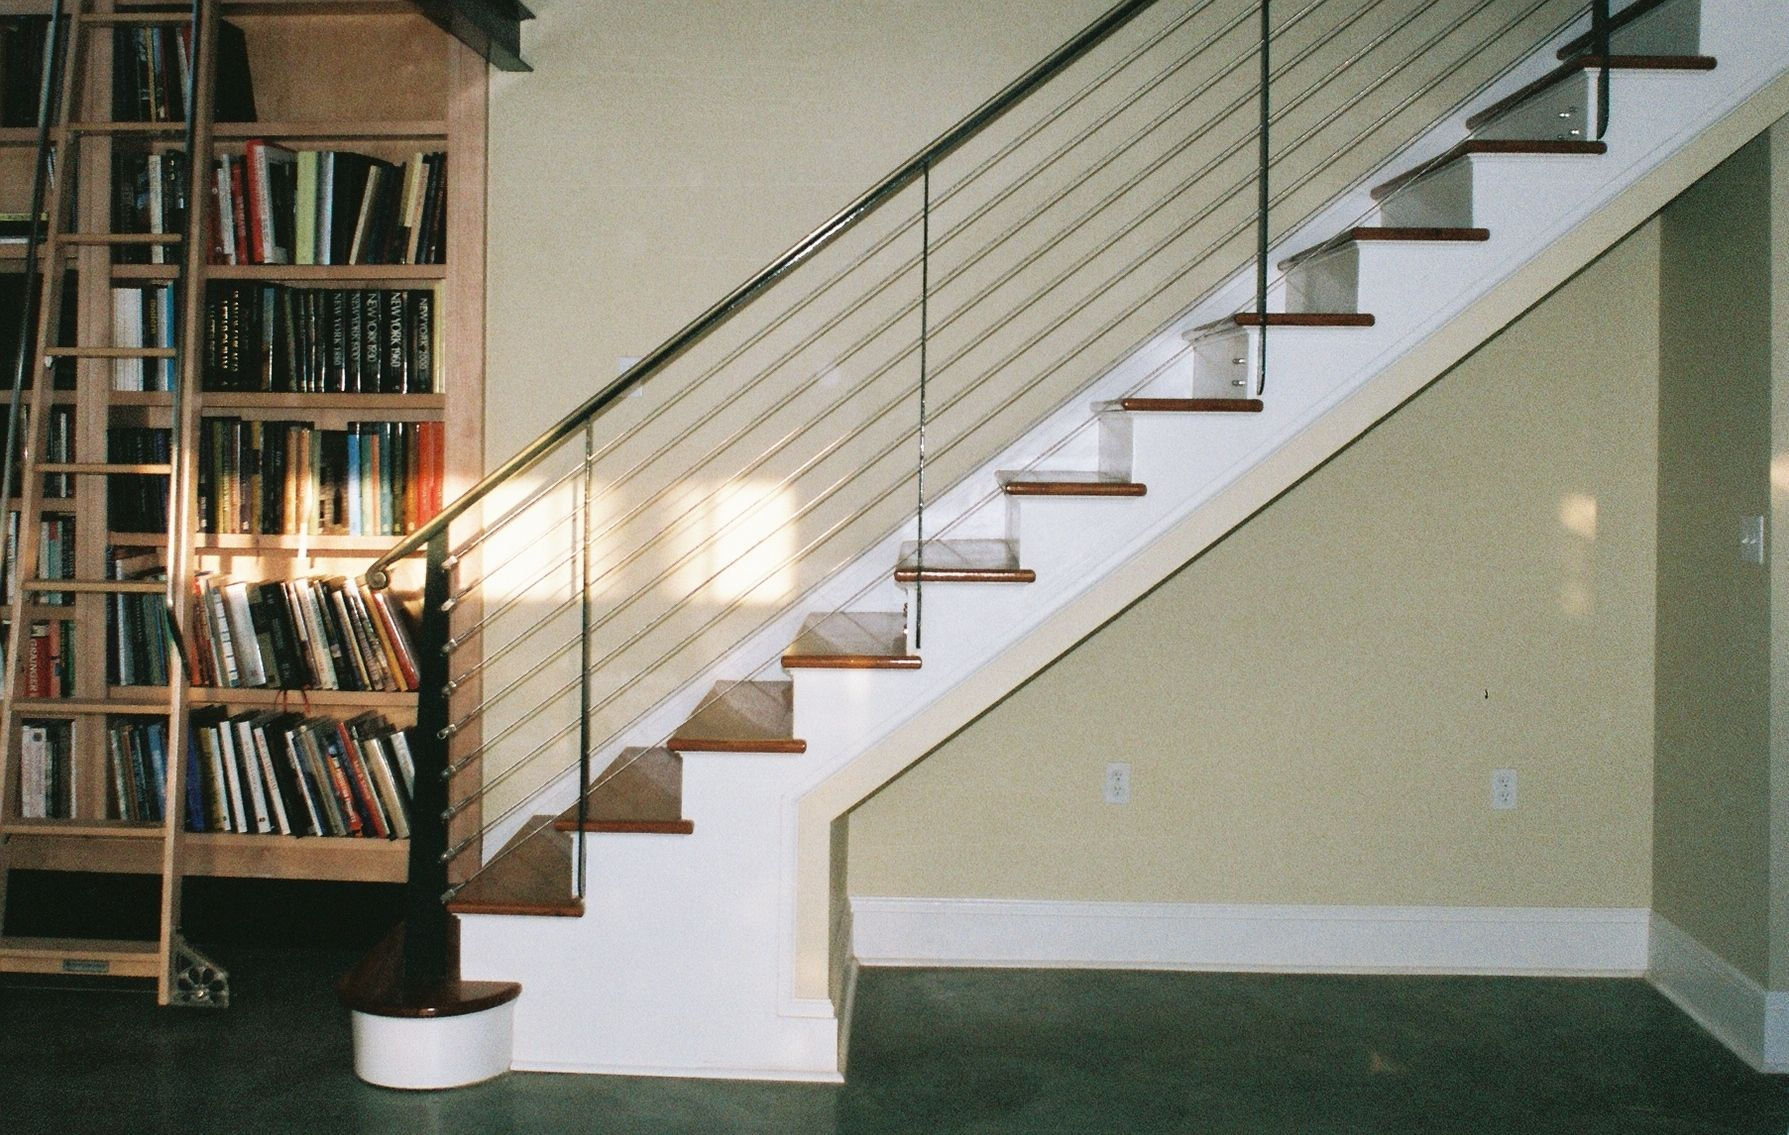 Google Image Result For Http Api Ning Com Files Sn | Modern Stair Railing Home Depot | Iron Stair | Deck Railing | Railing Kits | Cable Railing Systems | Railing Designs